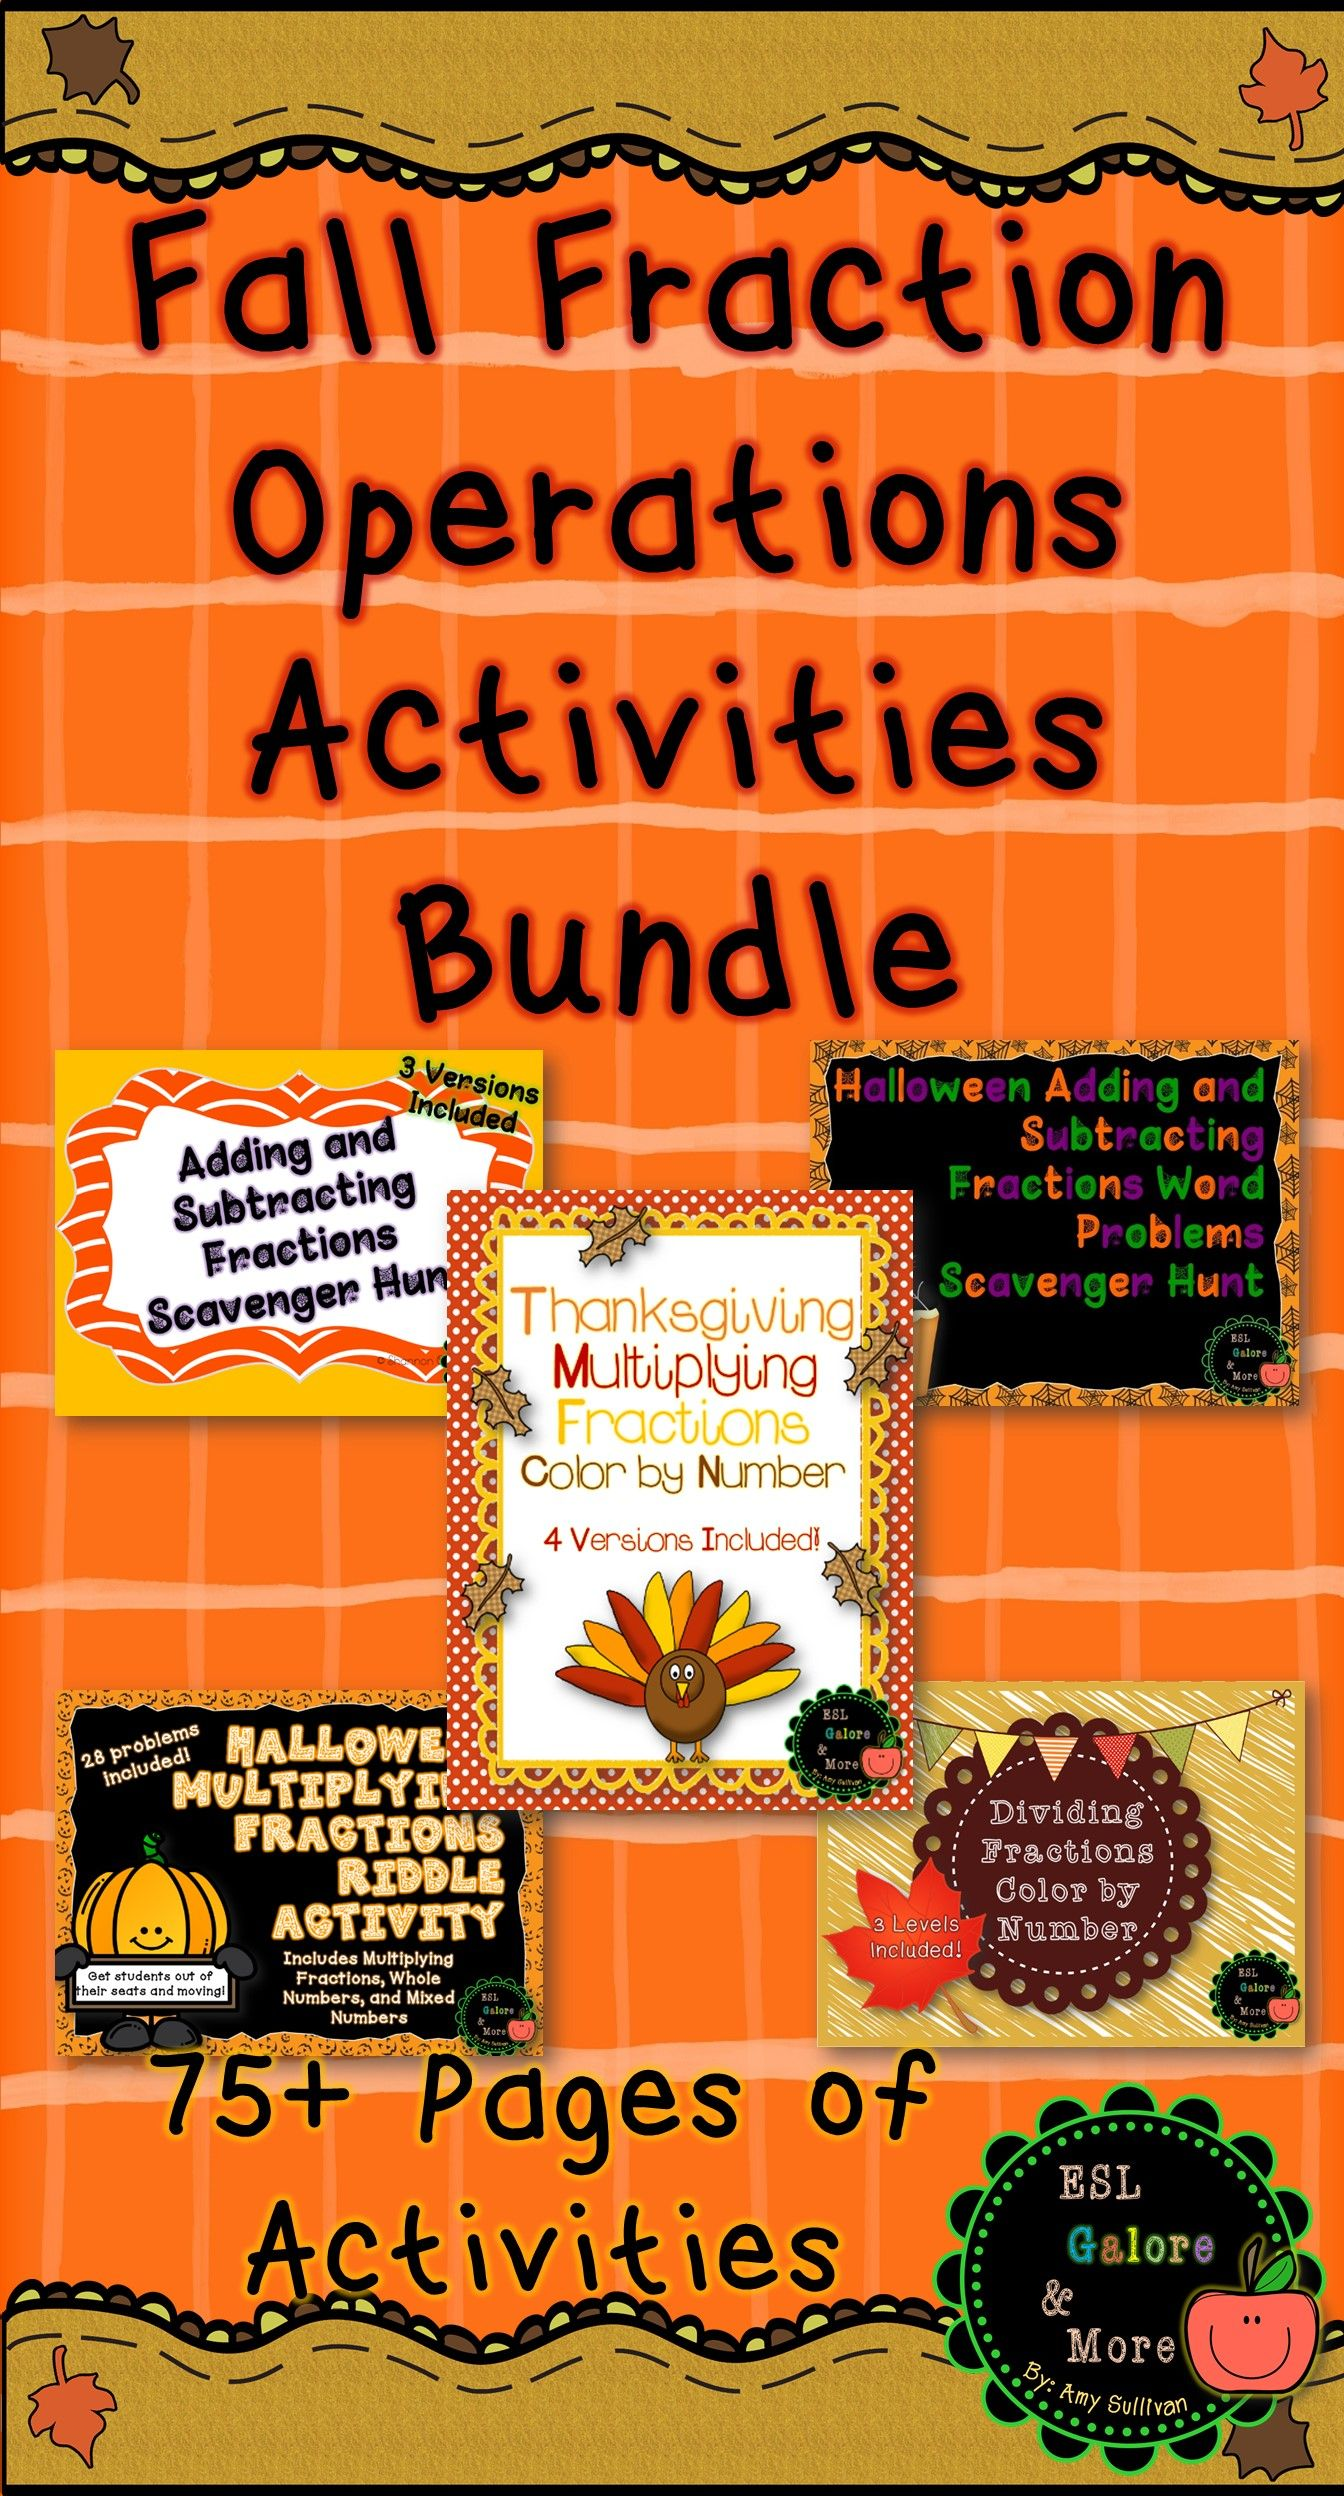 Fall Fraction Operations Activities Bundle